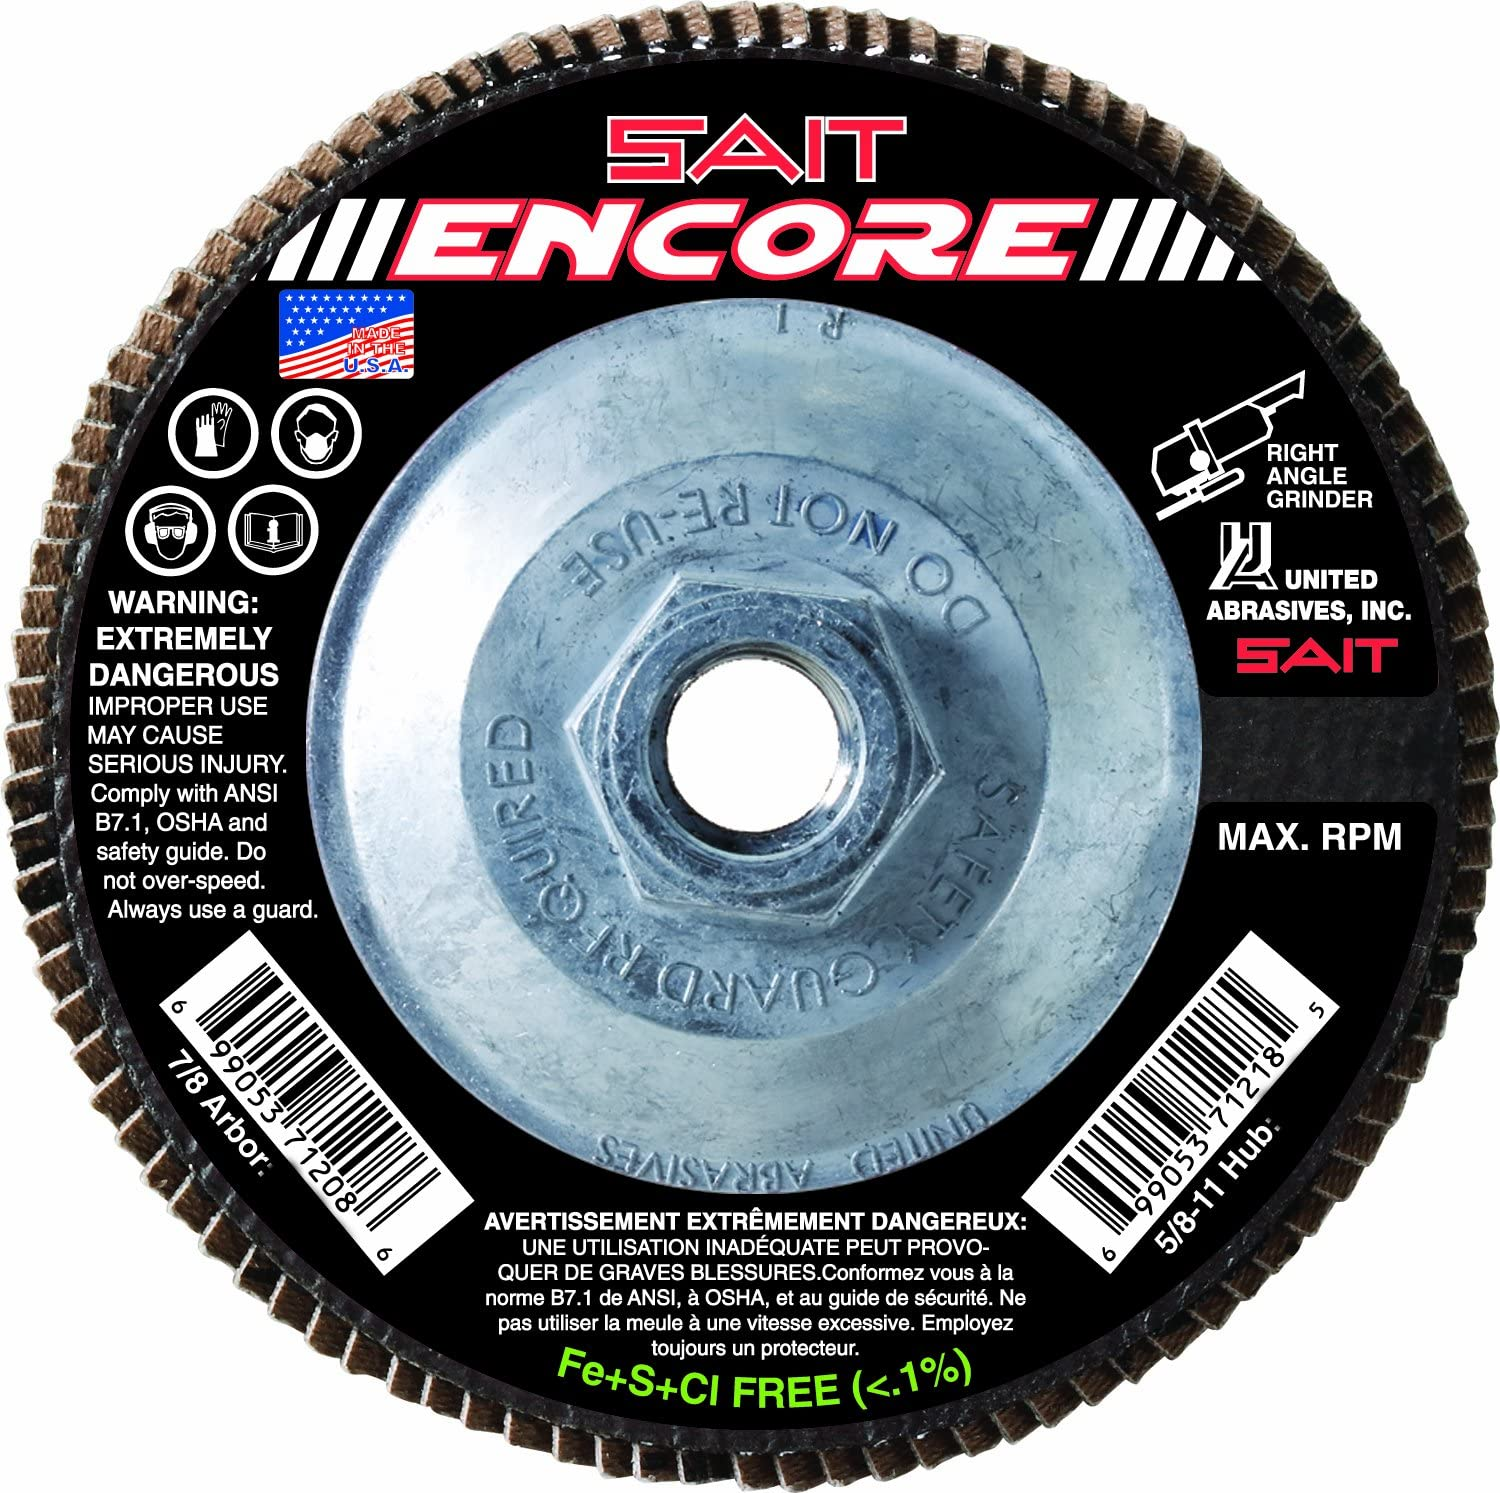 United Abrasives-SAIT 71219 Type 27 Encore Flap Disc, 4-1/2-Inch x 5/8-11-Inch Z 80X, 10-Pack